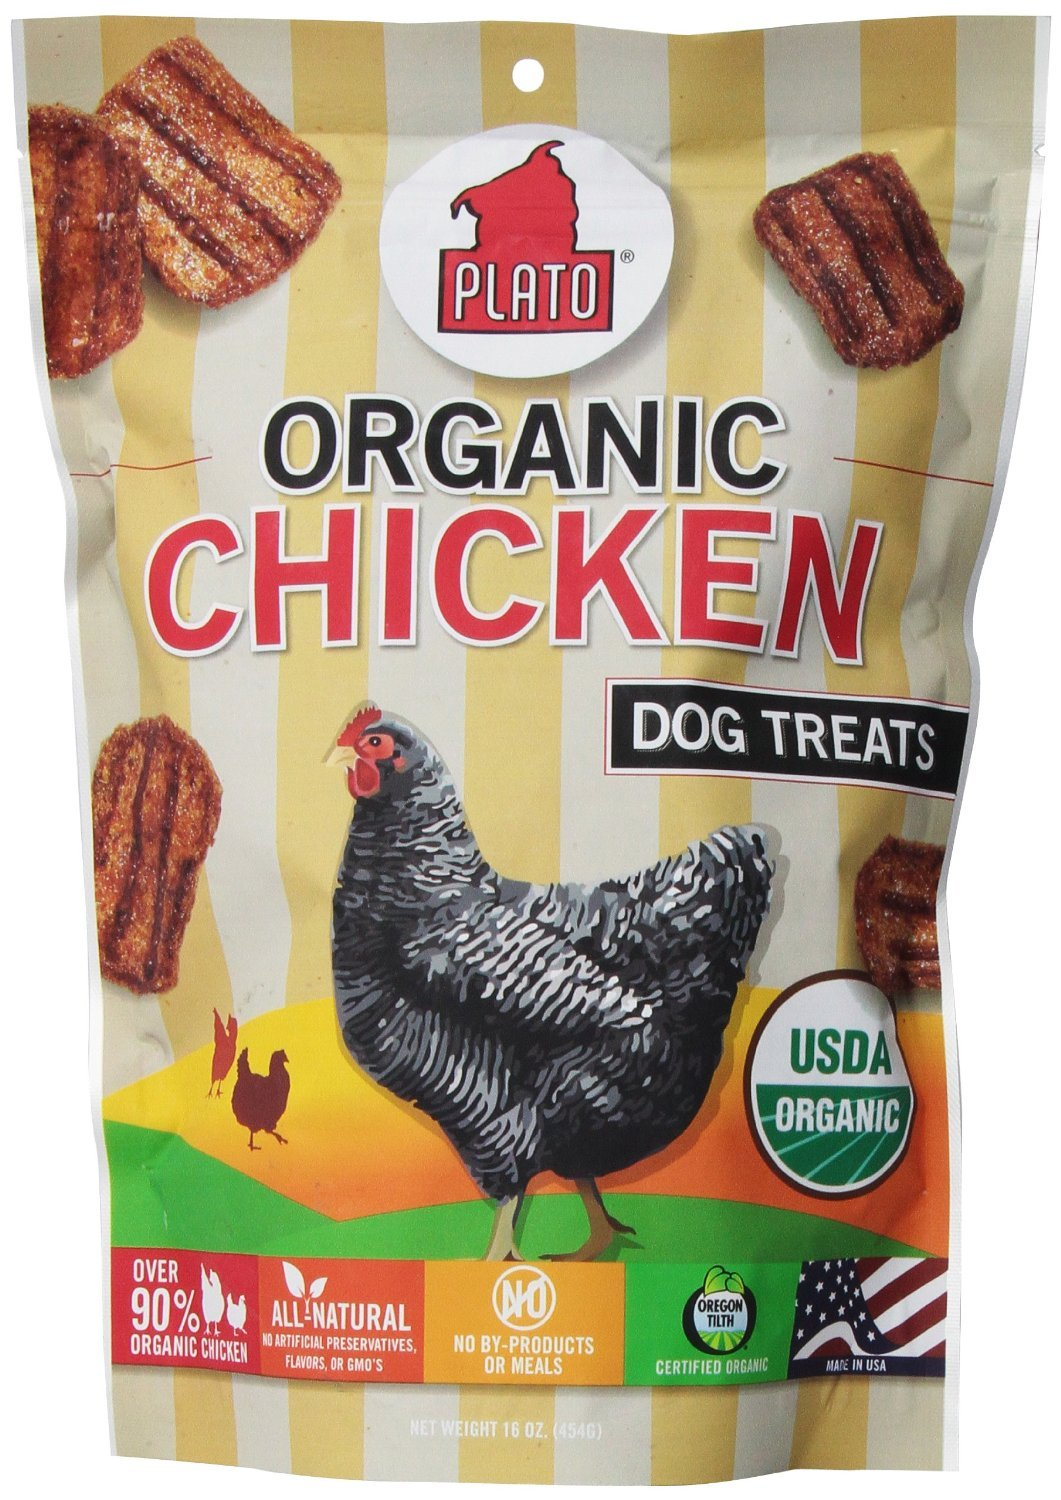 Plato Organic Chicken Dog Treats